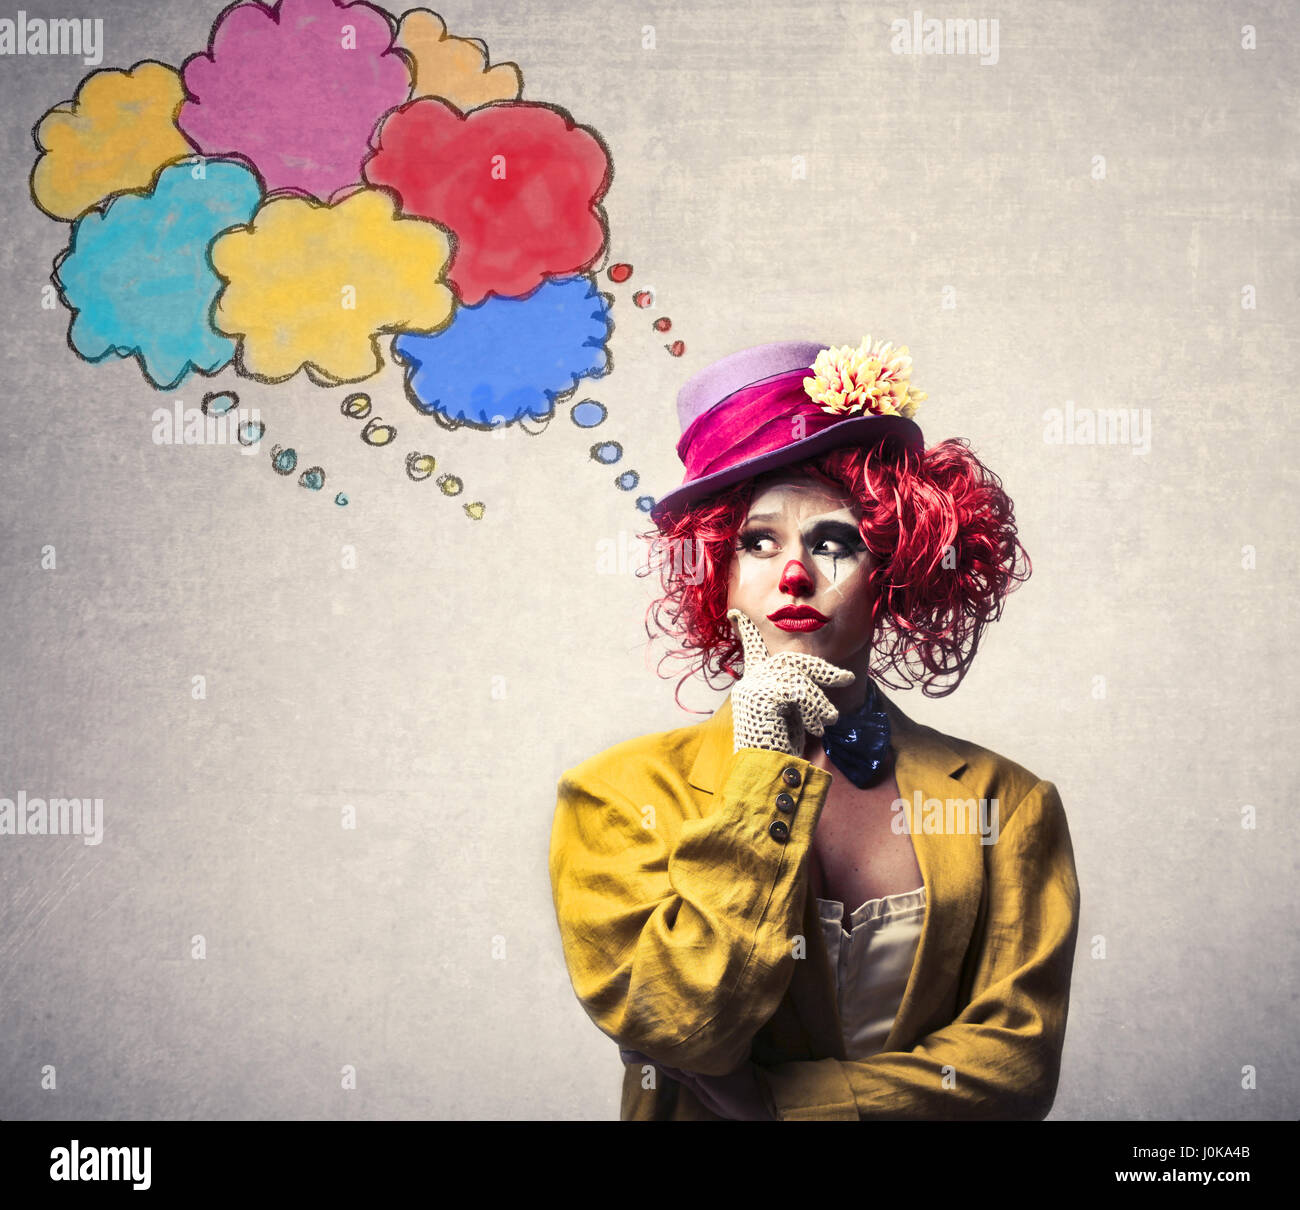 Clown donna pensando Foto Stock